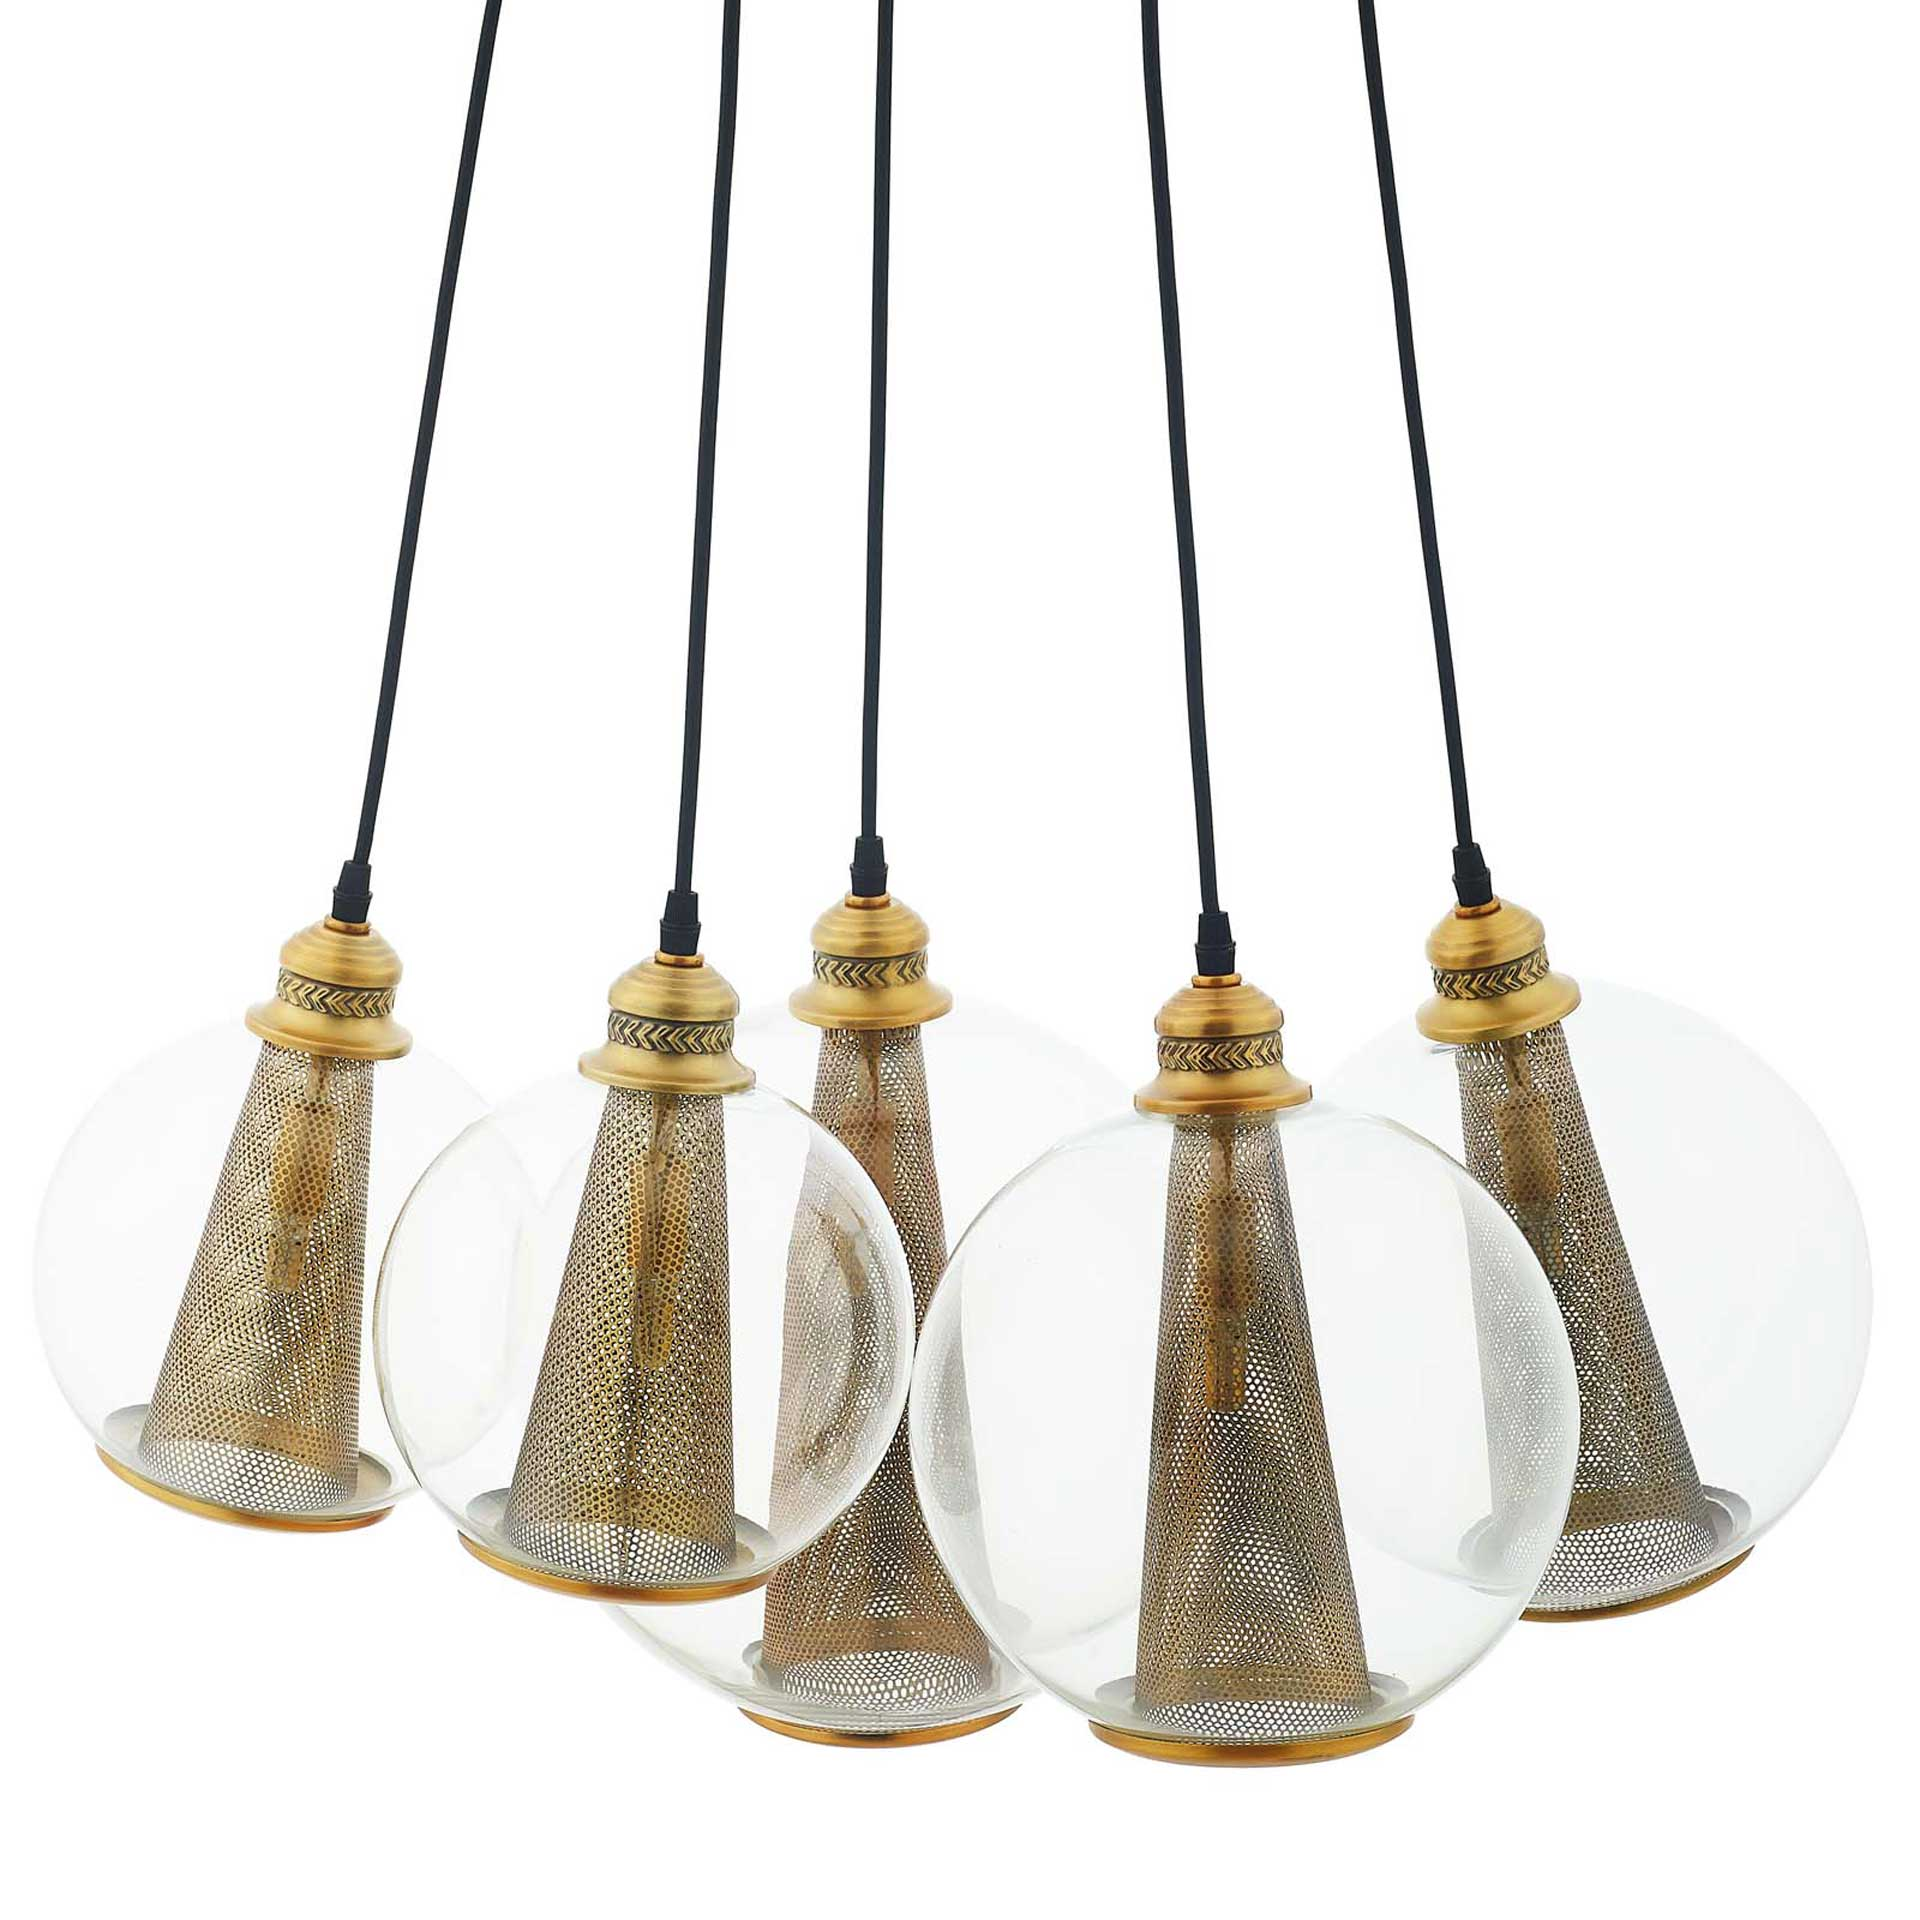 Phillip 5 Cone Chandelier Brass Gold/Black